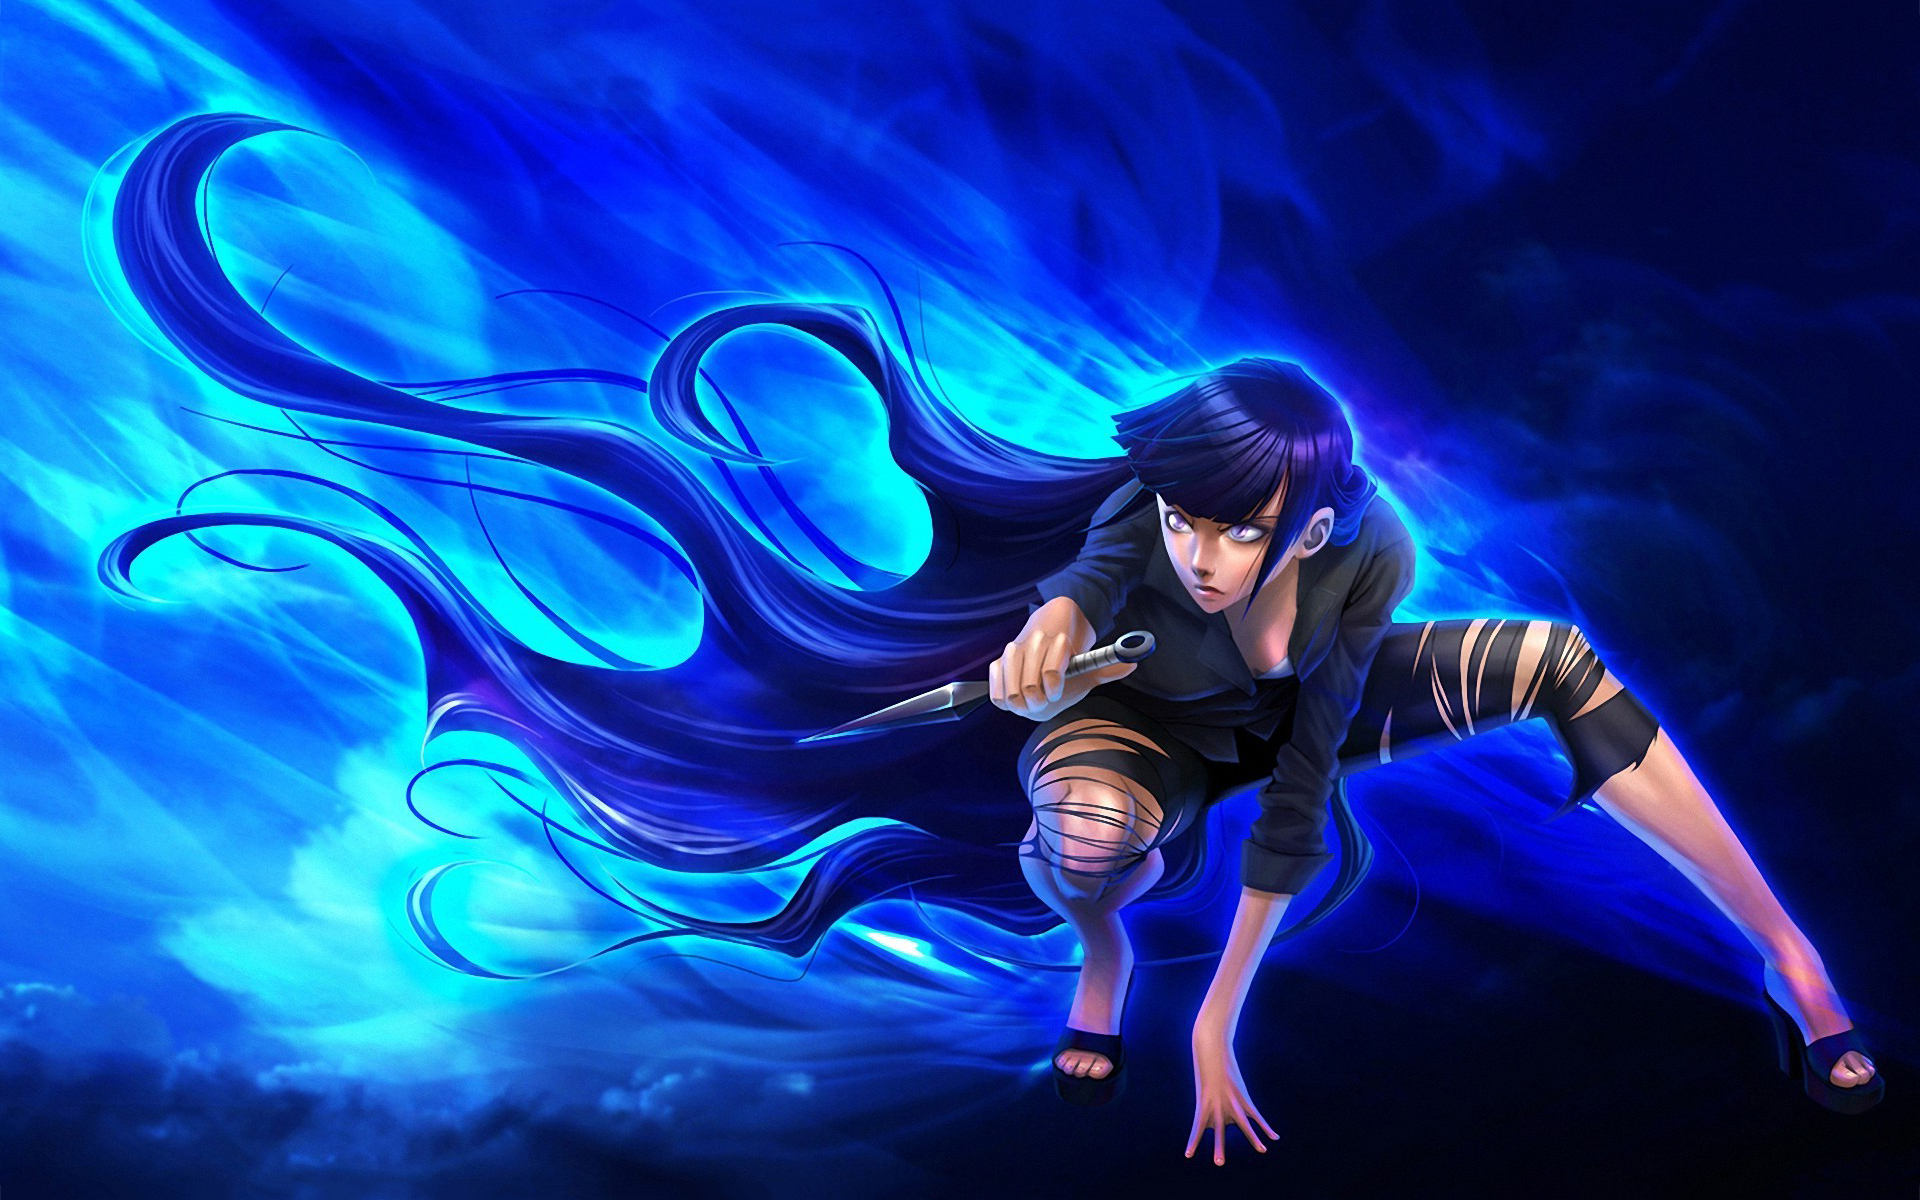 Naruto wallpapers best wallpapers for Deviantart wallpaper